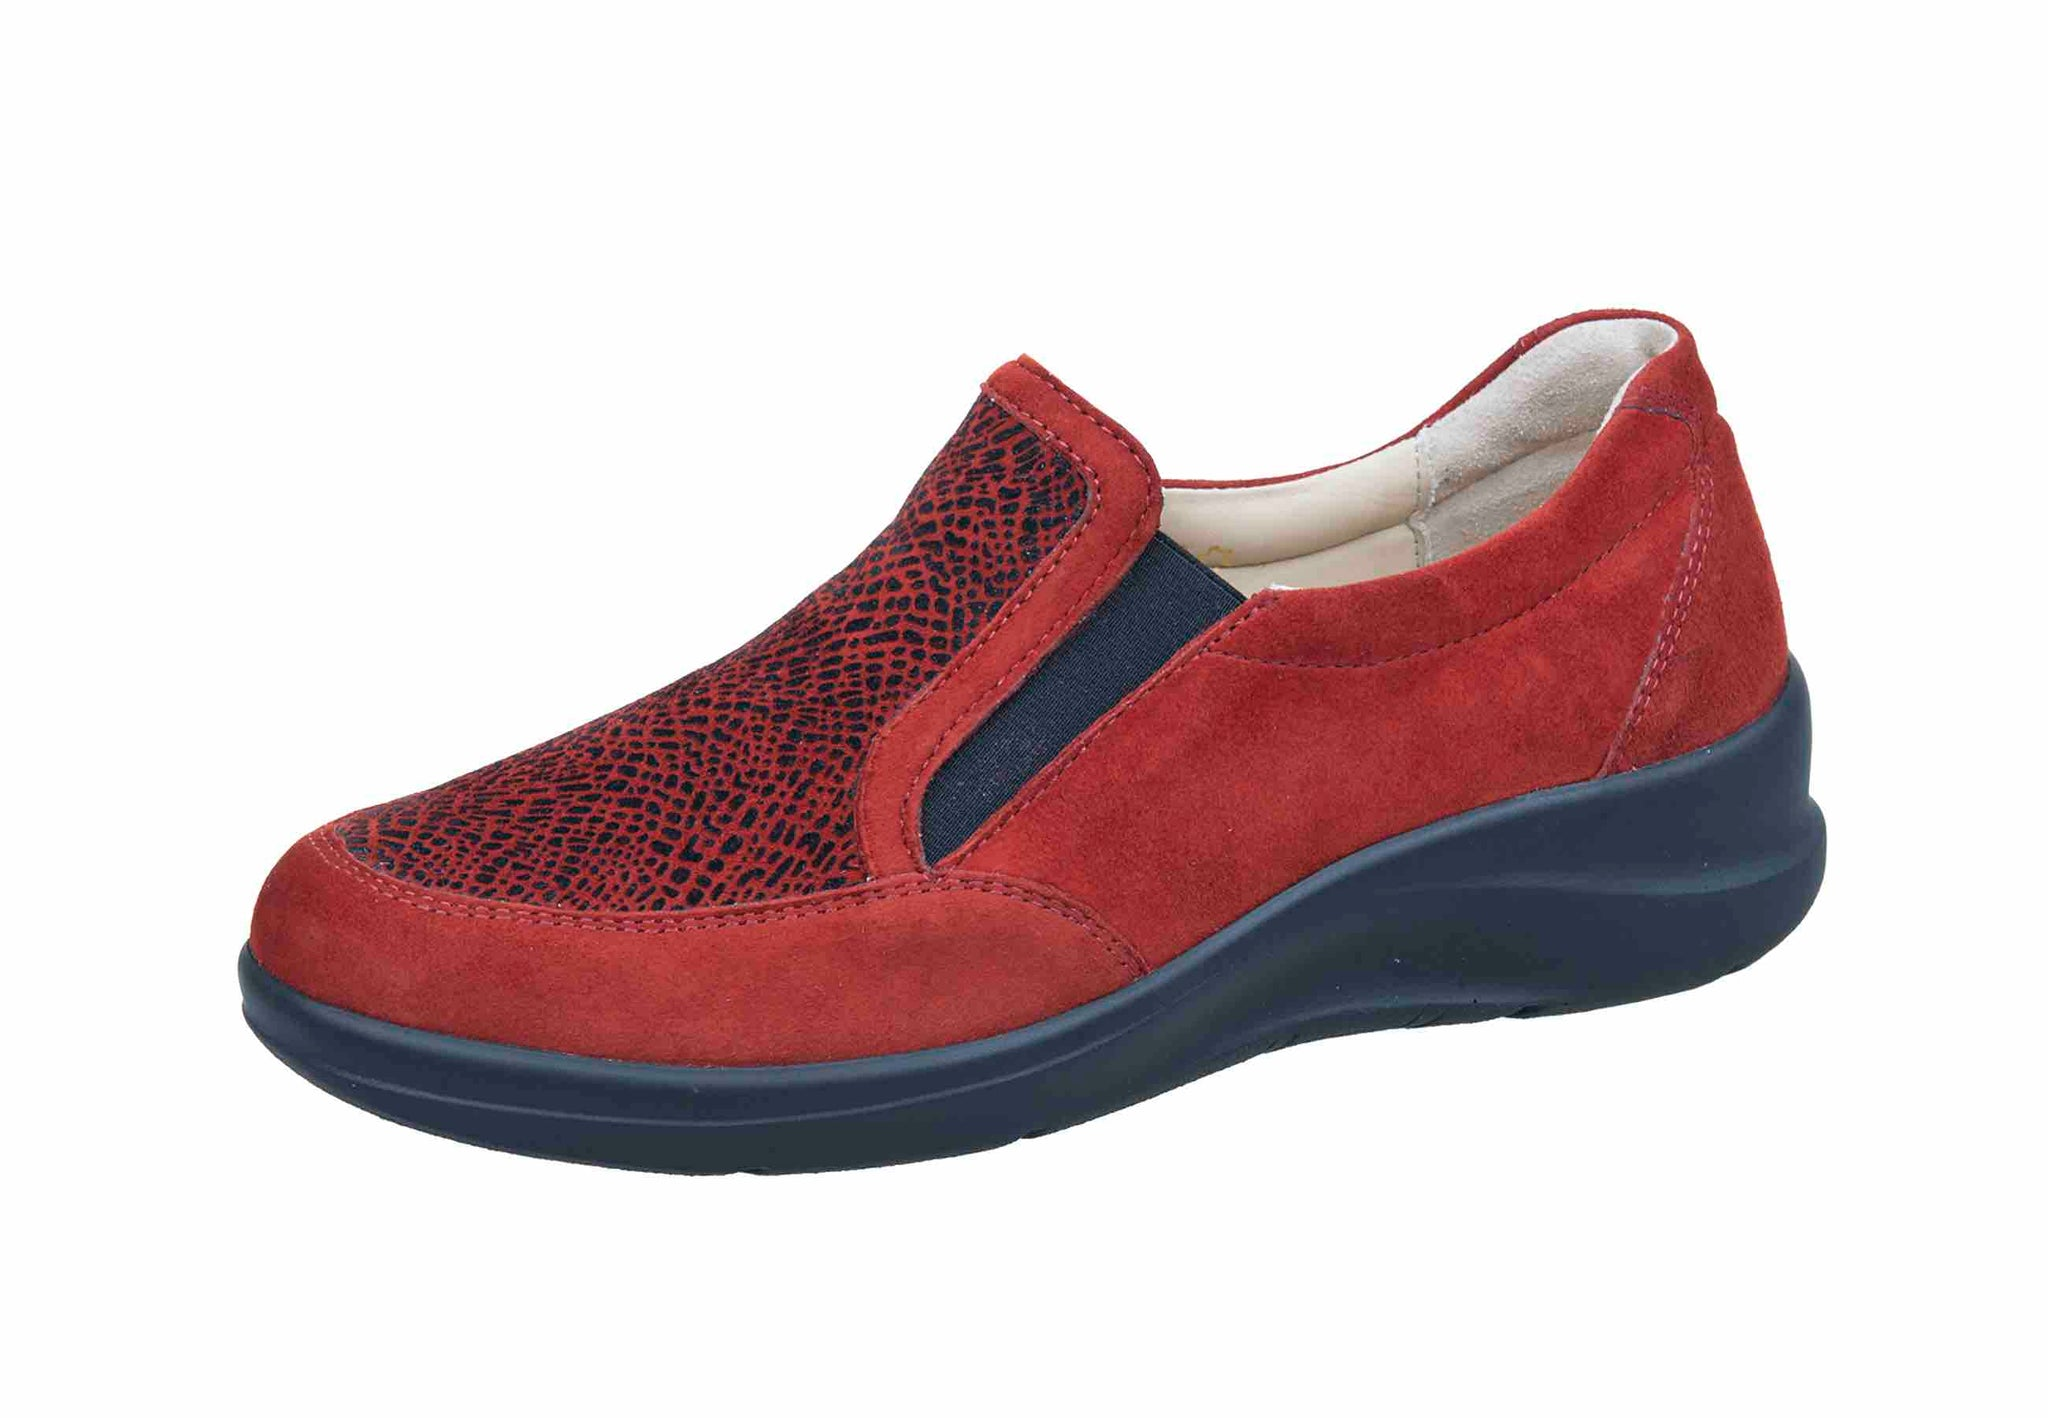 Fidelio HALLUX 546107-16 Rouge Amalfi Multi-stretch Largeur H -Boutique du Cordonnier